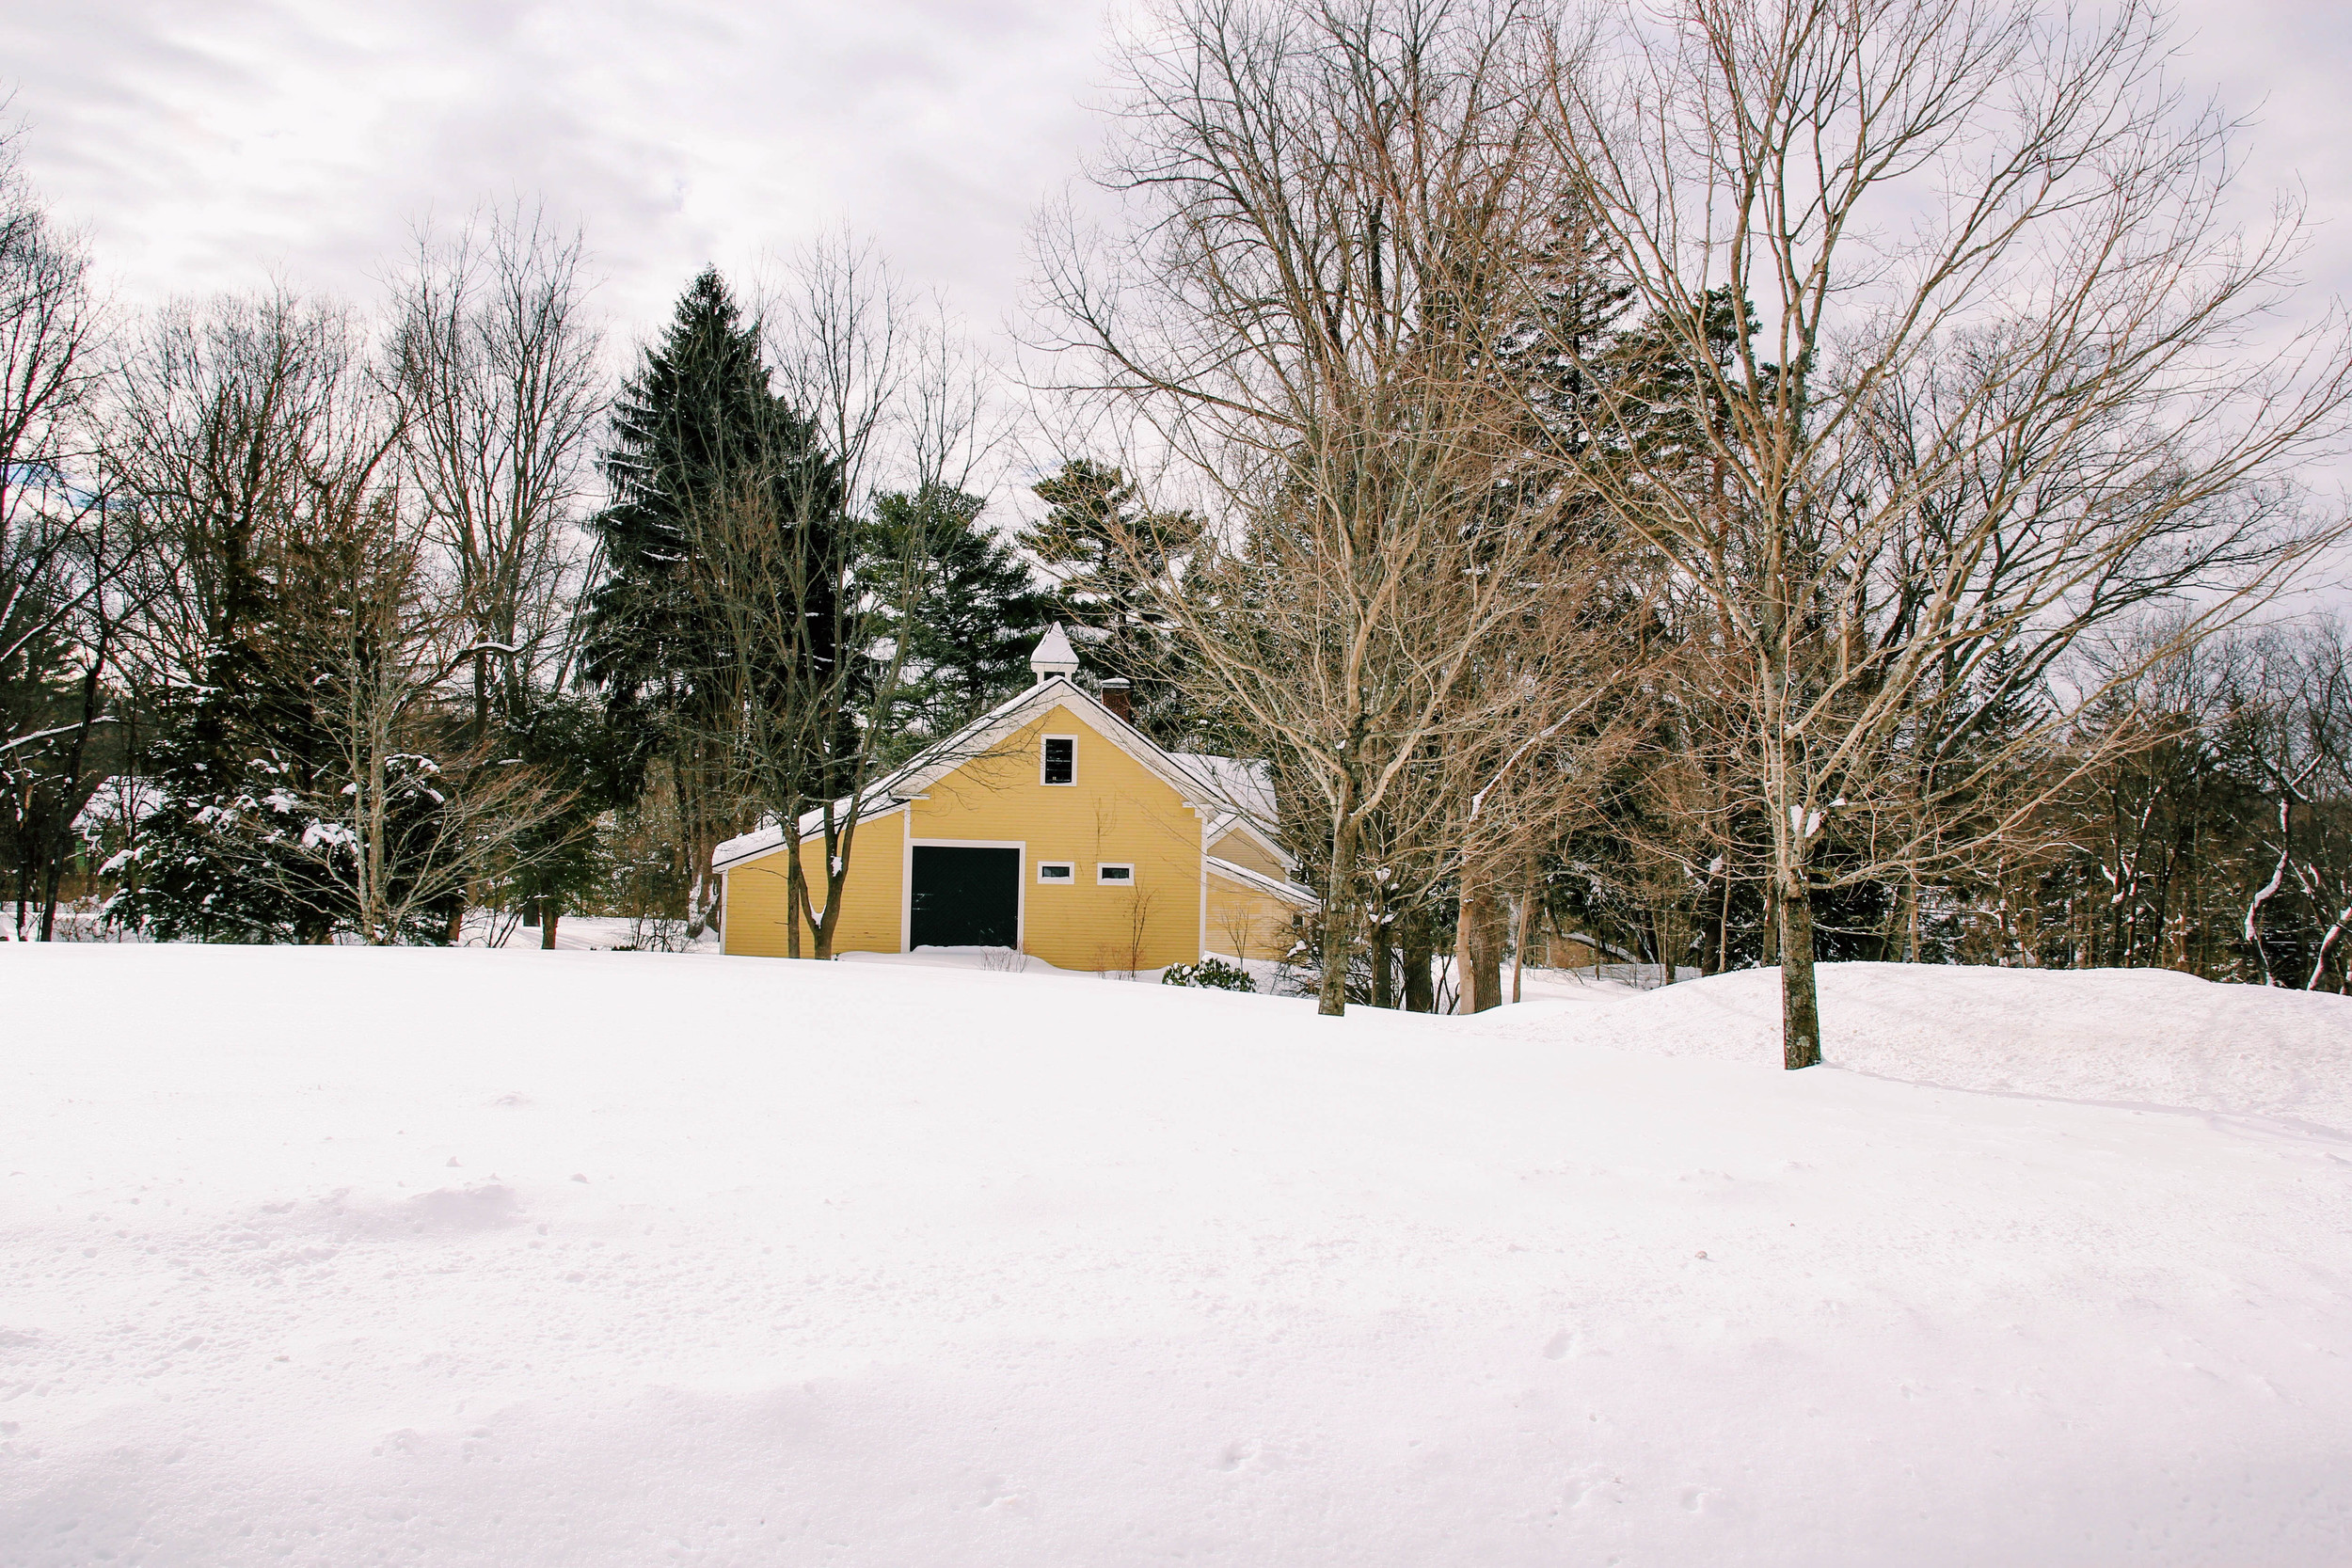 {Snow covered yard}